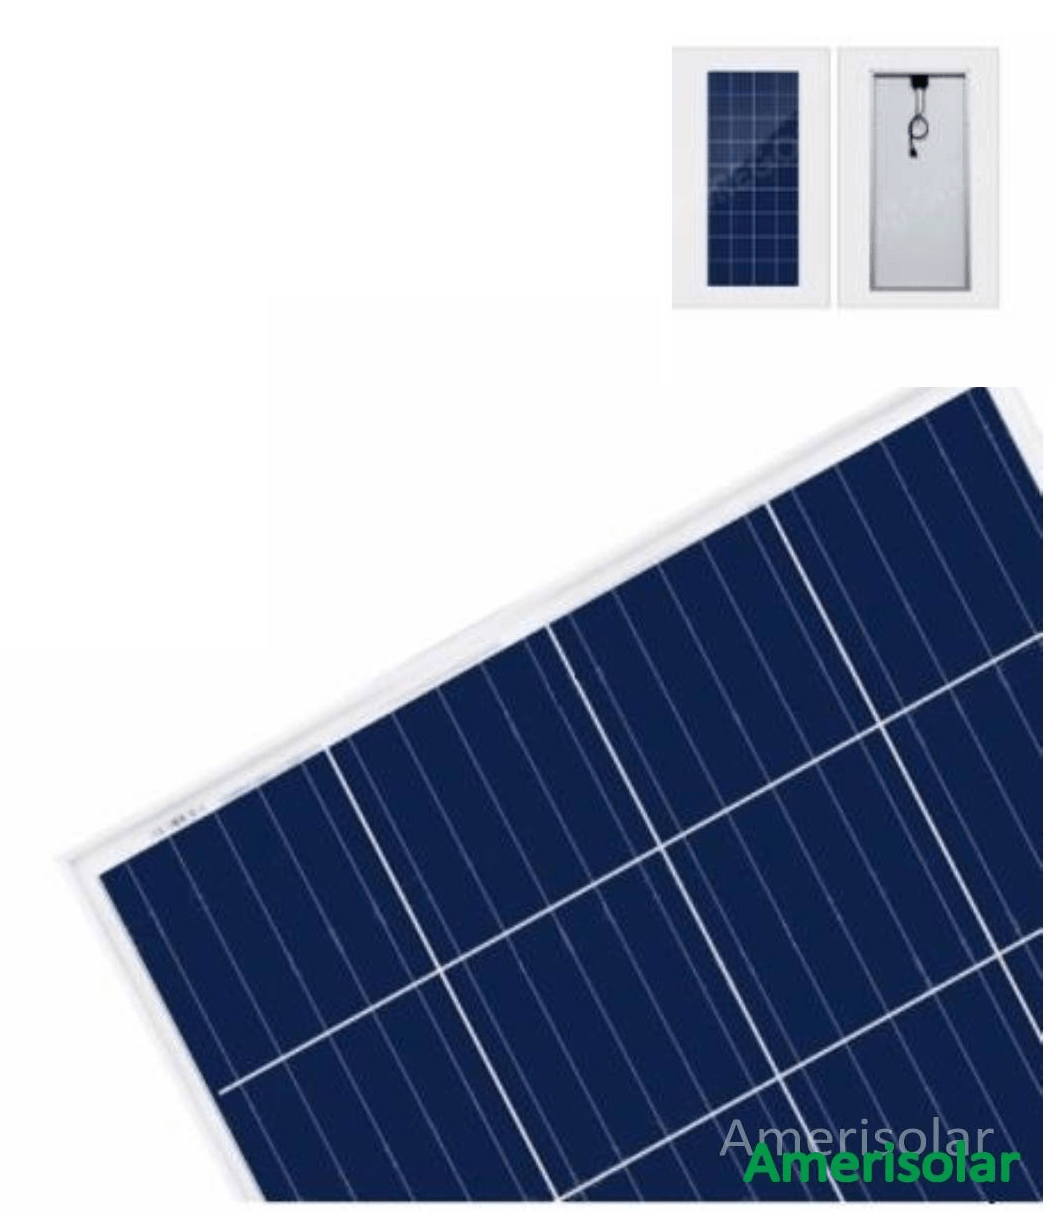 Amerisolar-to-Supply-5-busbar-BB-Solar-2 Amerisolar to Supply 5-busbar (BB) Solar Modules for Global Markets News